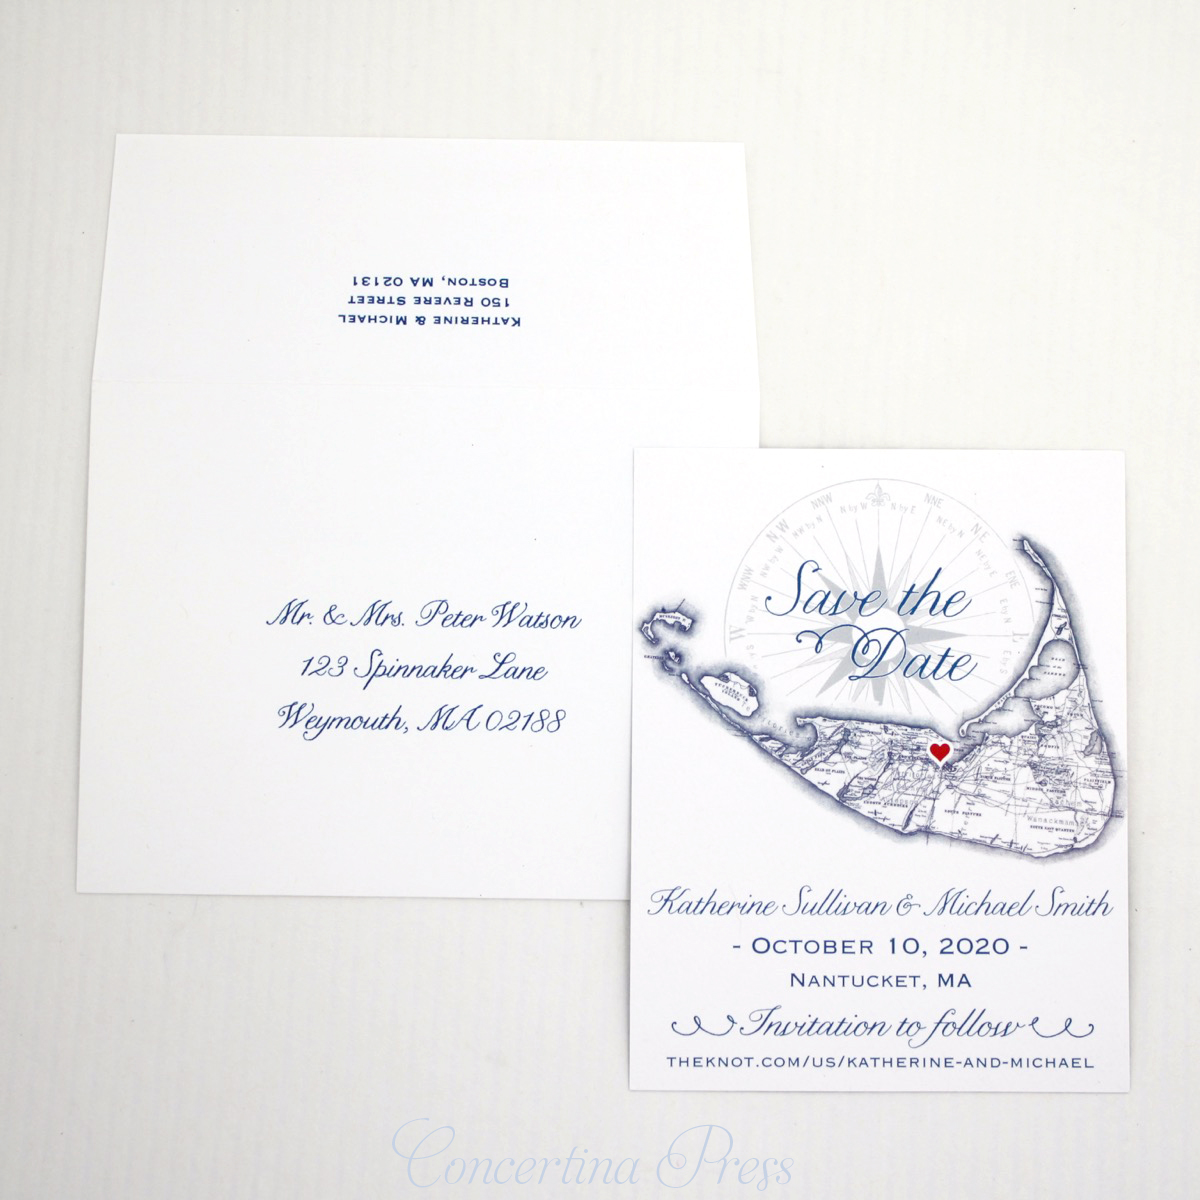 Nantucket Save the Dates with envelope addressing from Concertina Press